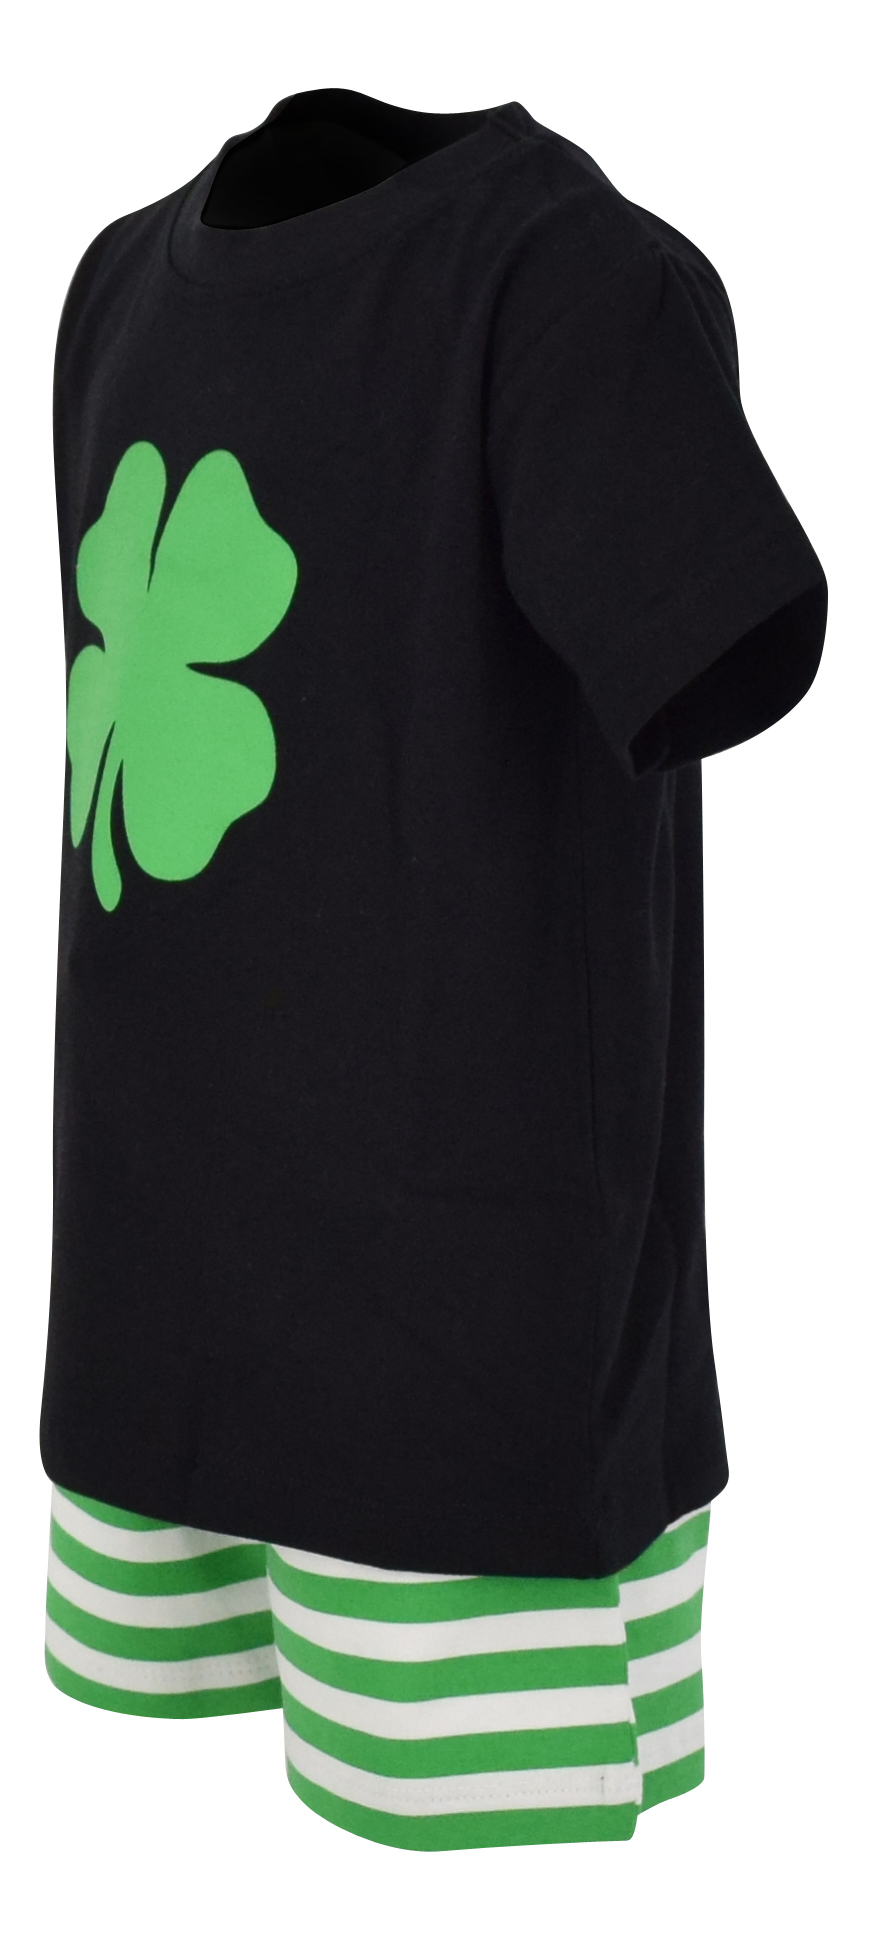 Boys-2-Piece-ST-Patricks-Day-Clover-Outfit-2t-3t-4t-5-6-7-8-Toddler-Kids-Clothes thumbnail 32